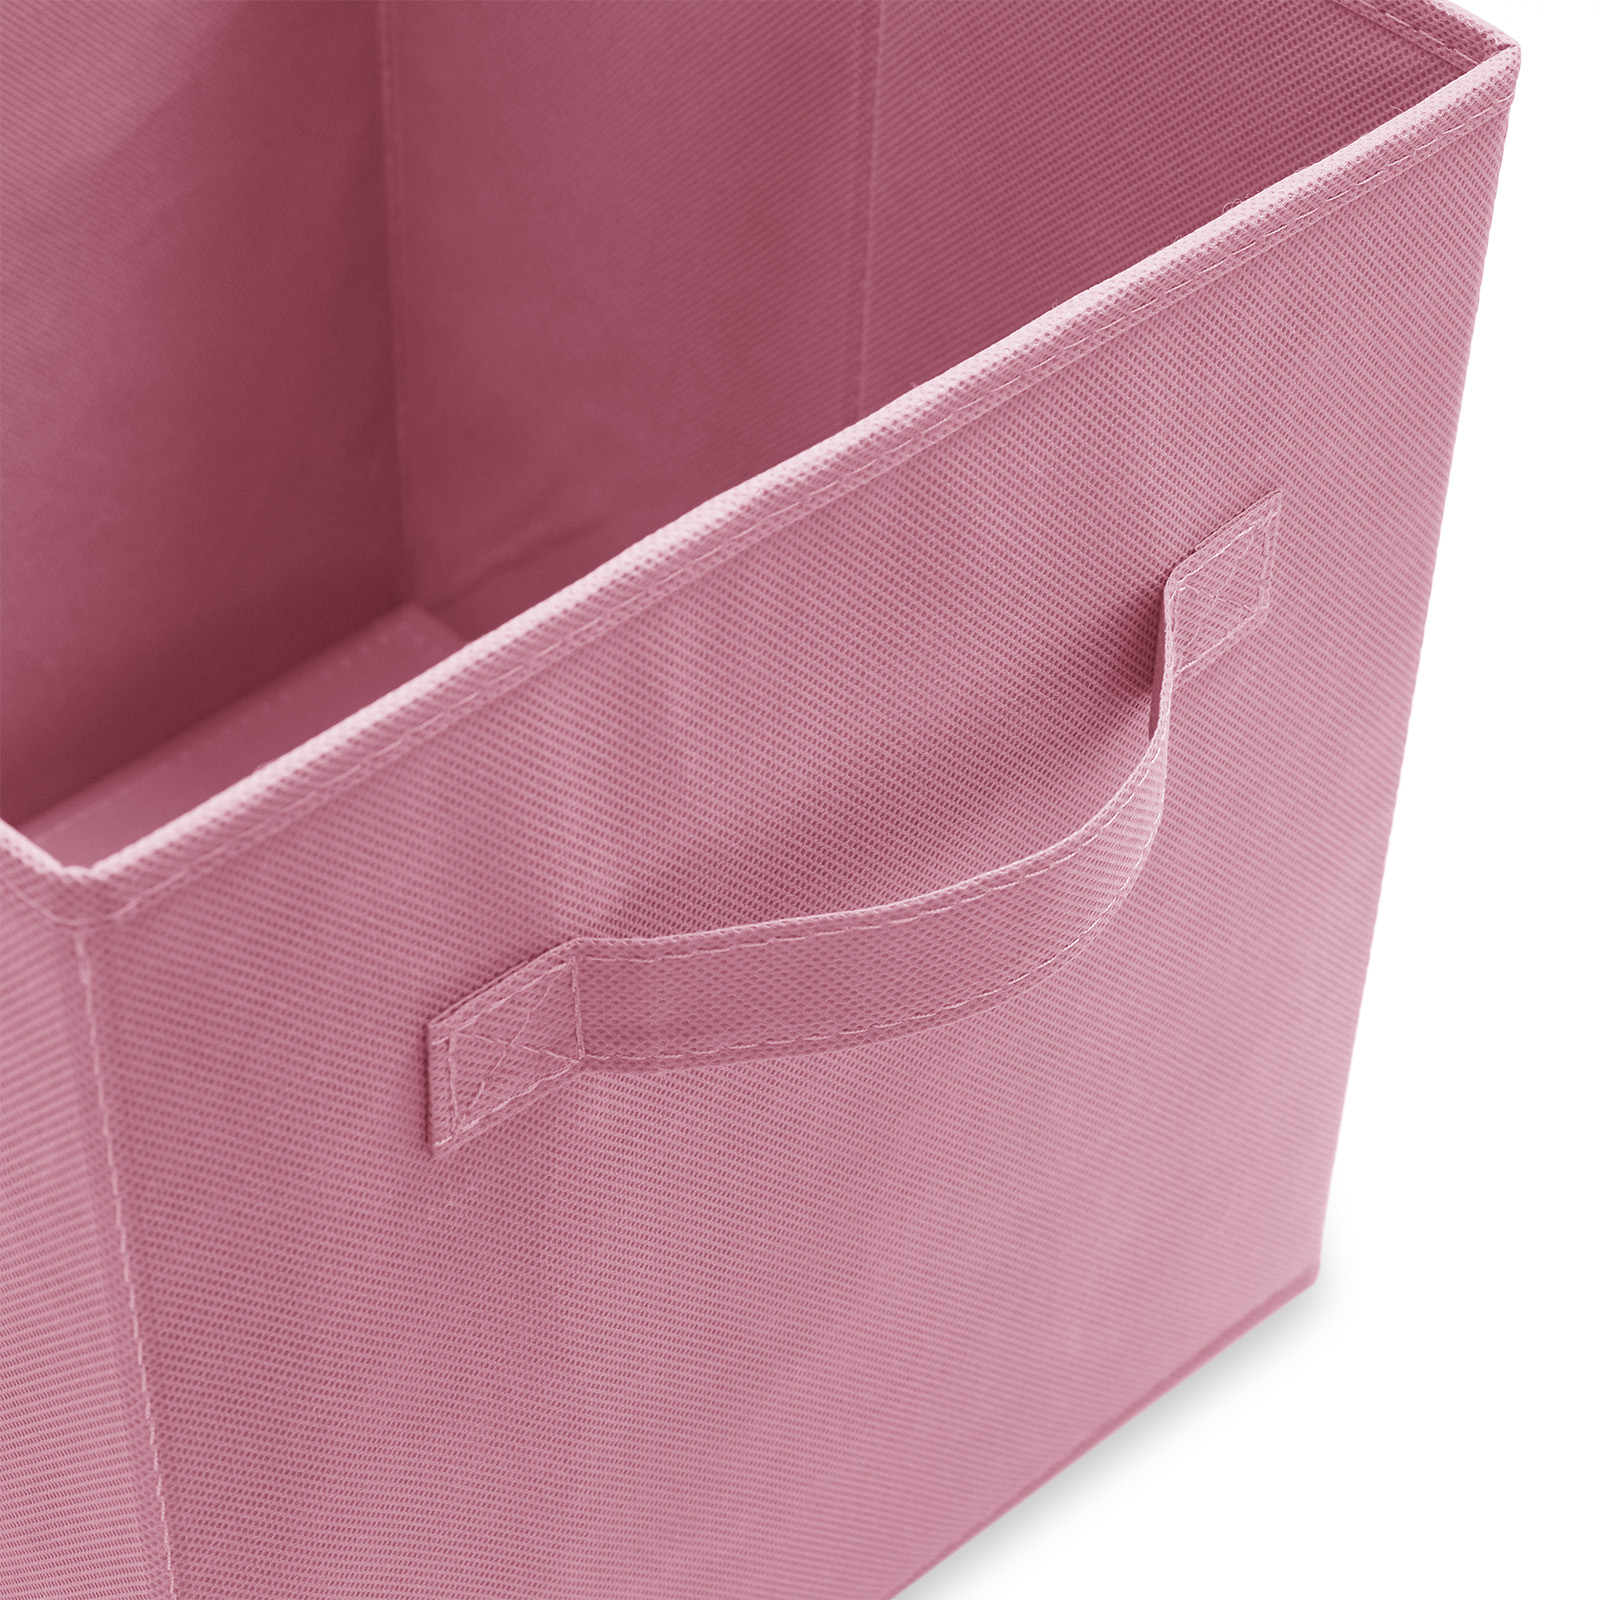 6-Collapsible-Foldable-Cloth-Fabric-Cubby-Cube-Storage-Bins-Baskets-for-Shelves thumbnail 37